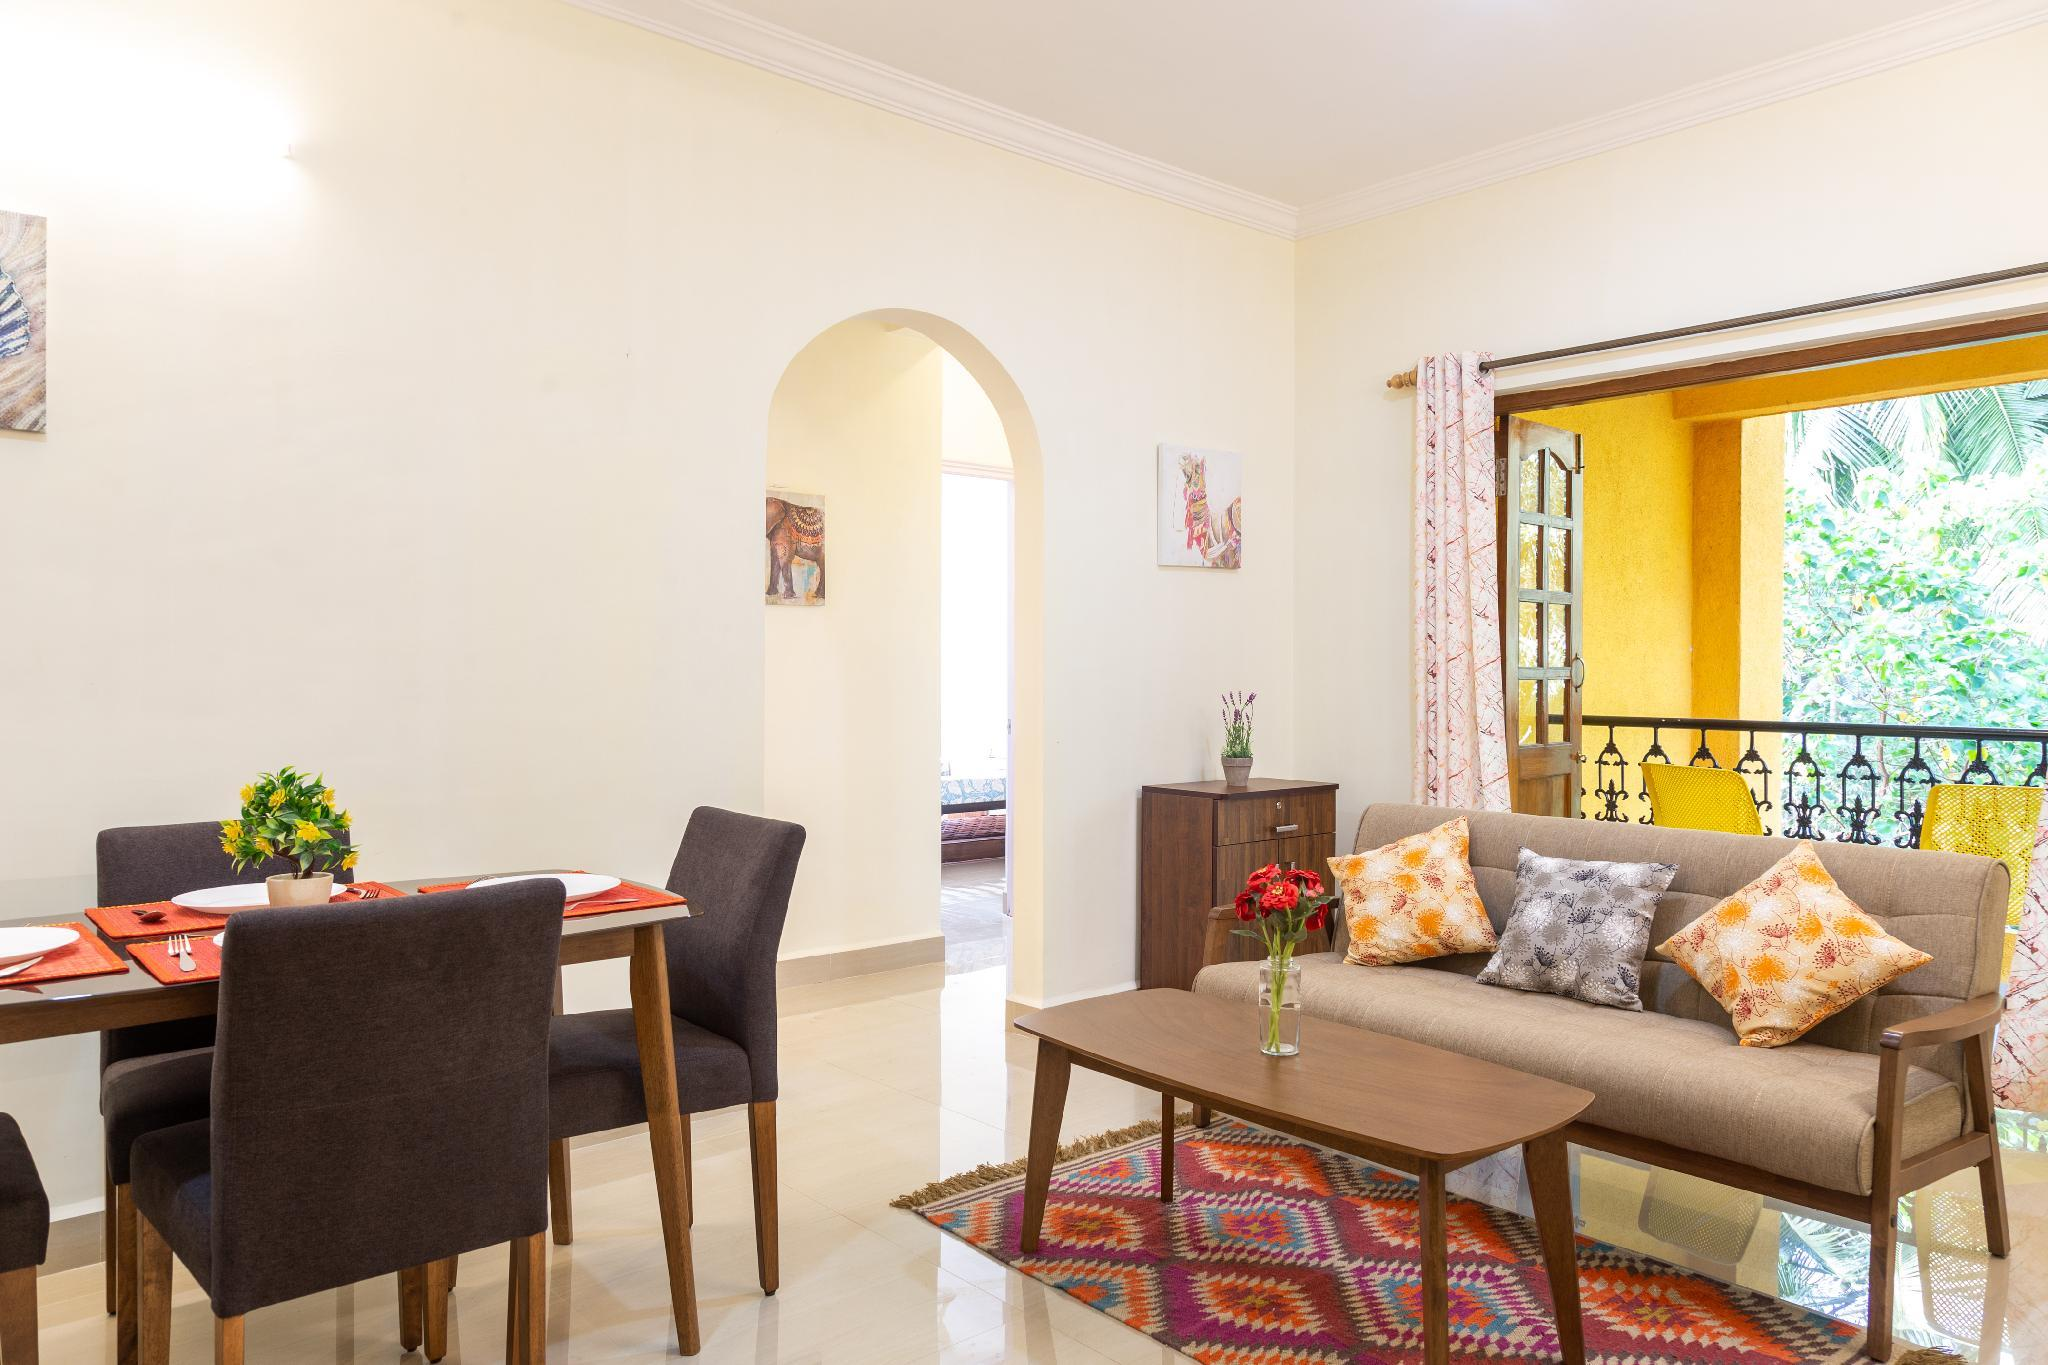 2 Bedroom Apartment With Pool   102 Casa Stay